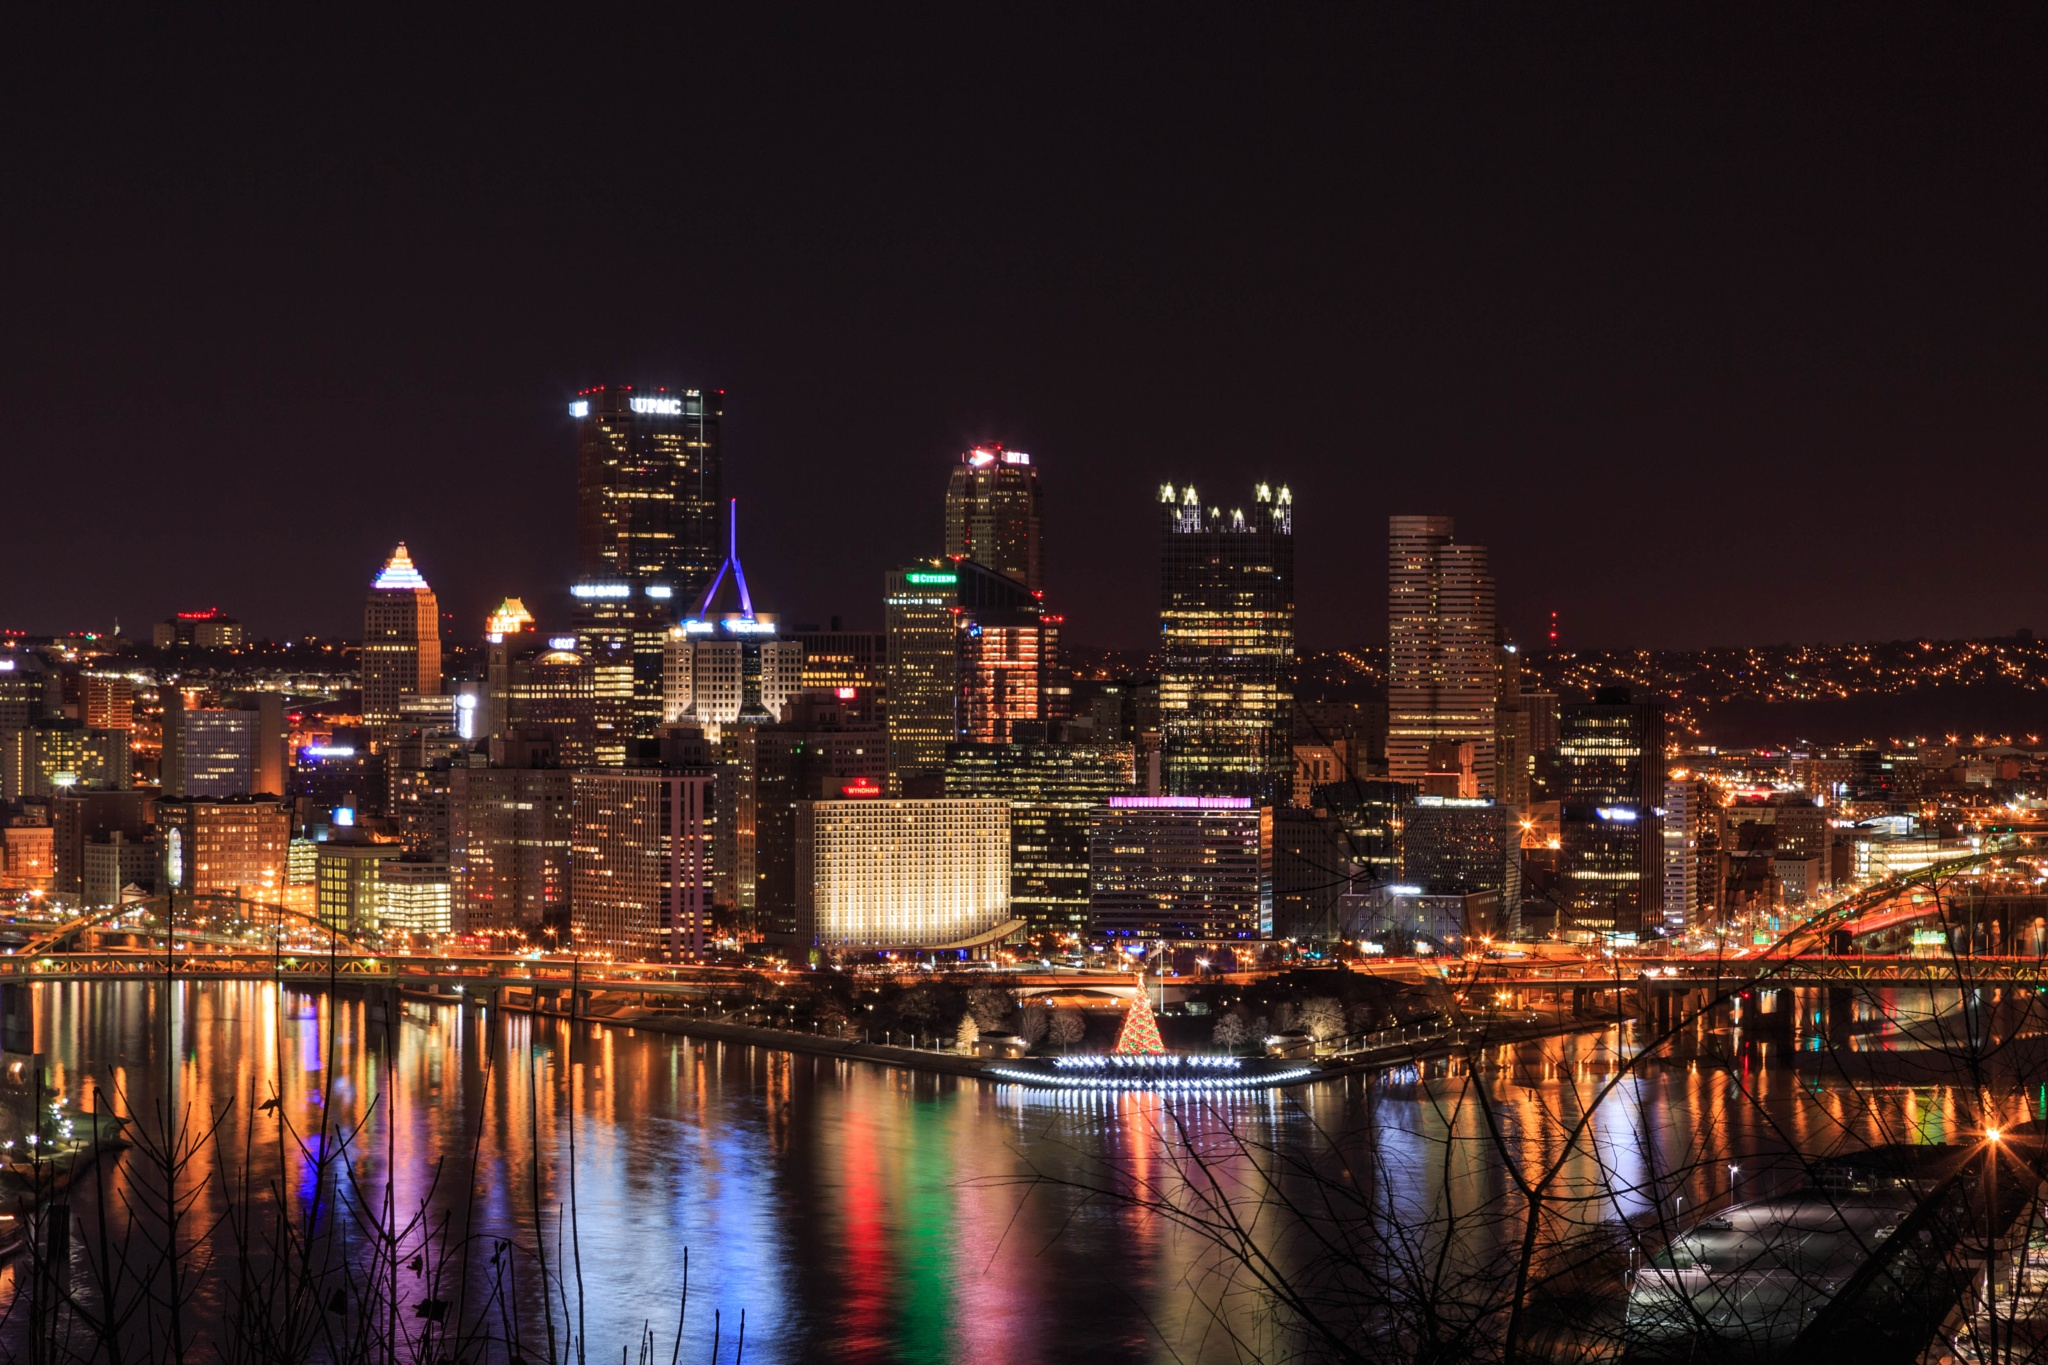 Lights of Pittsburgh by dorothy.pierinirodgers